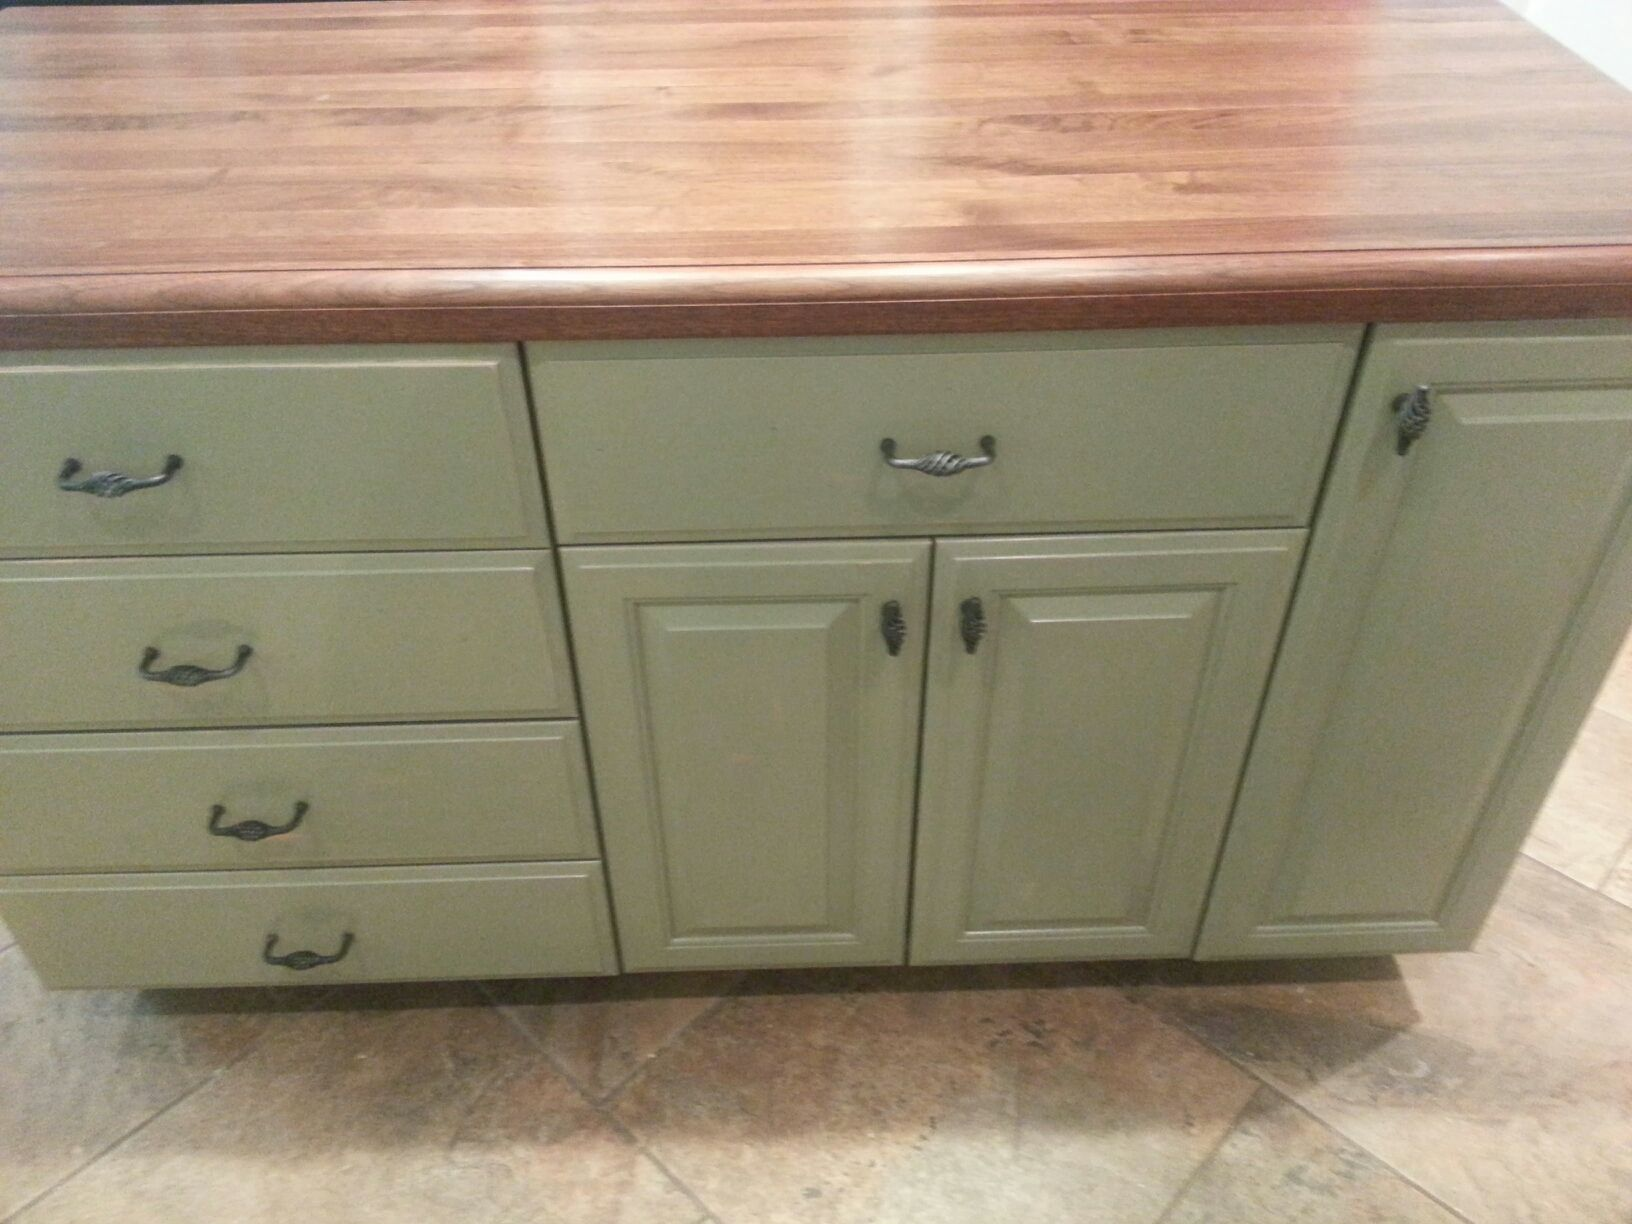 Pin by Wallscapers on Cabinet Refinishing | Pinterest